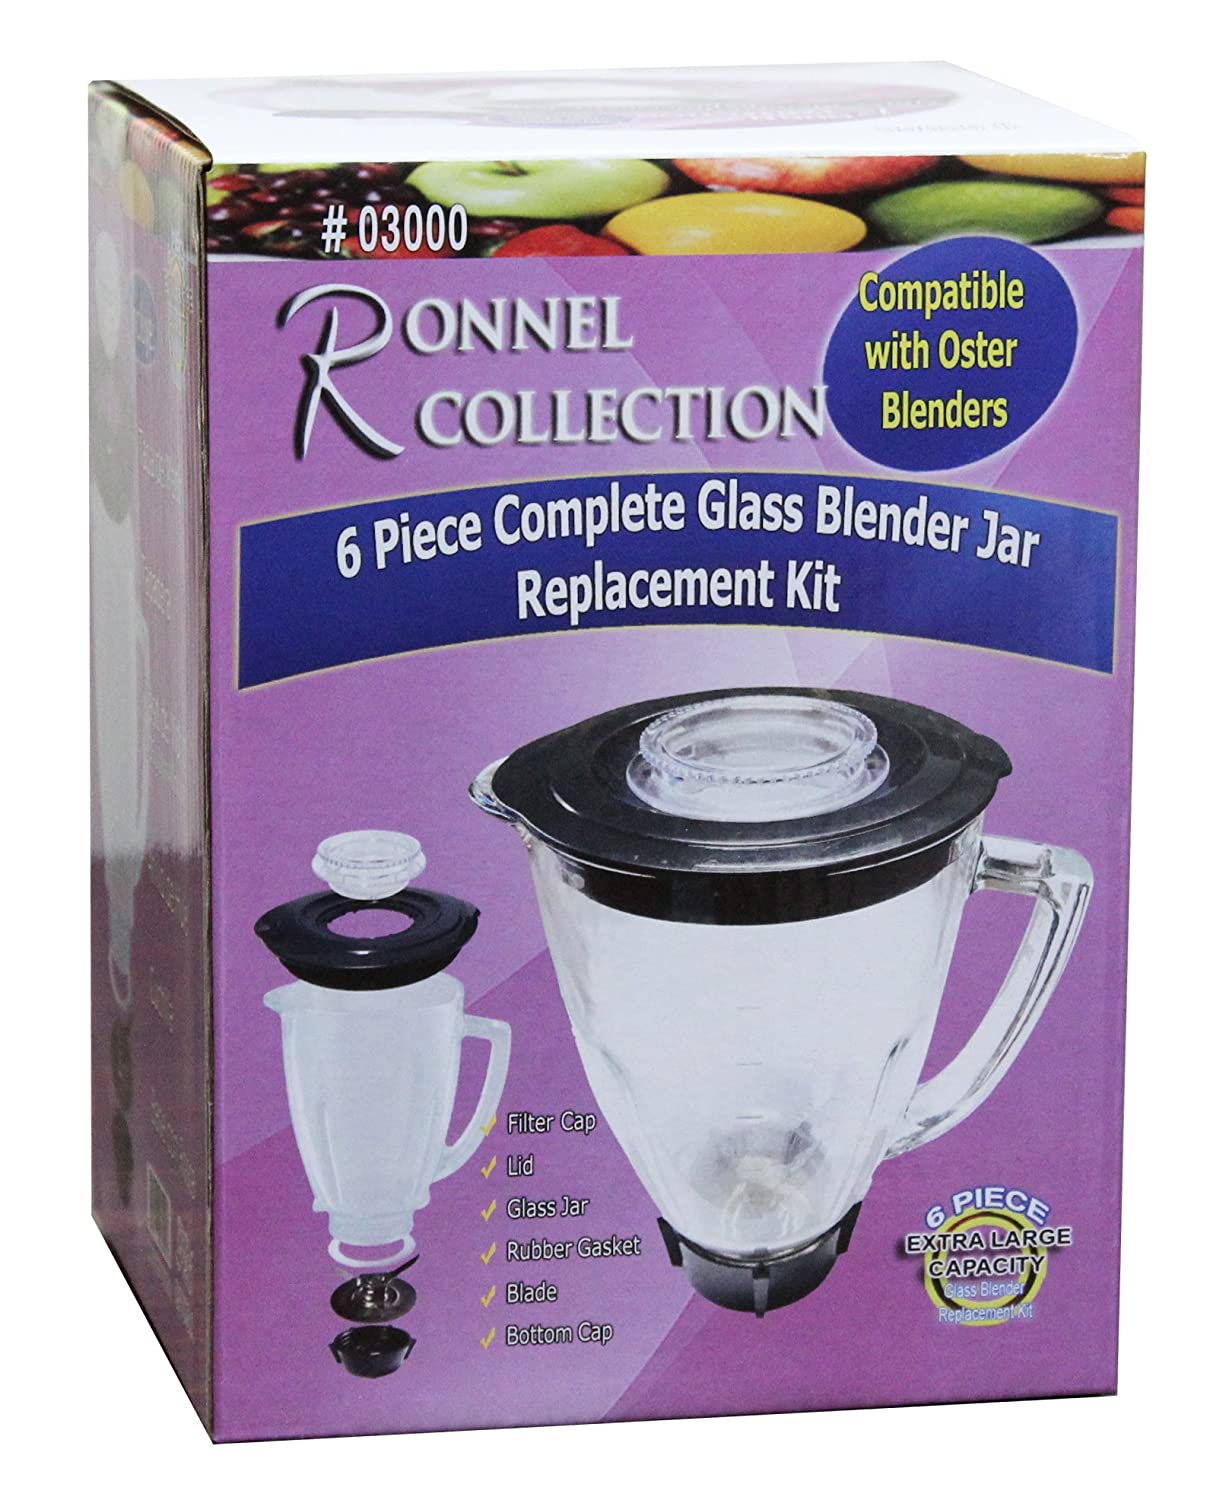 Ronnel Collection 6-Piece Square Blender Glass Jar Replacement Kit for Oster Blender 6.8 Cup 06000 1.6 Liter